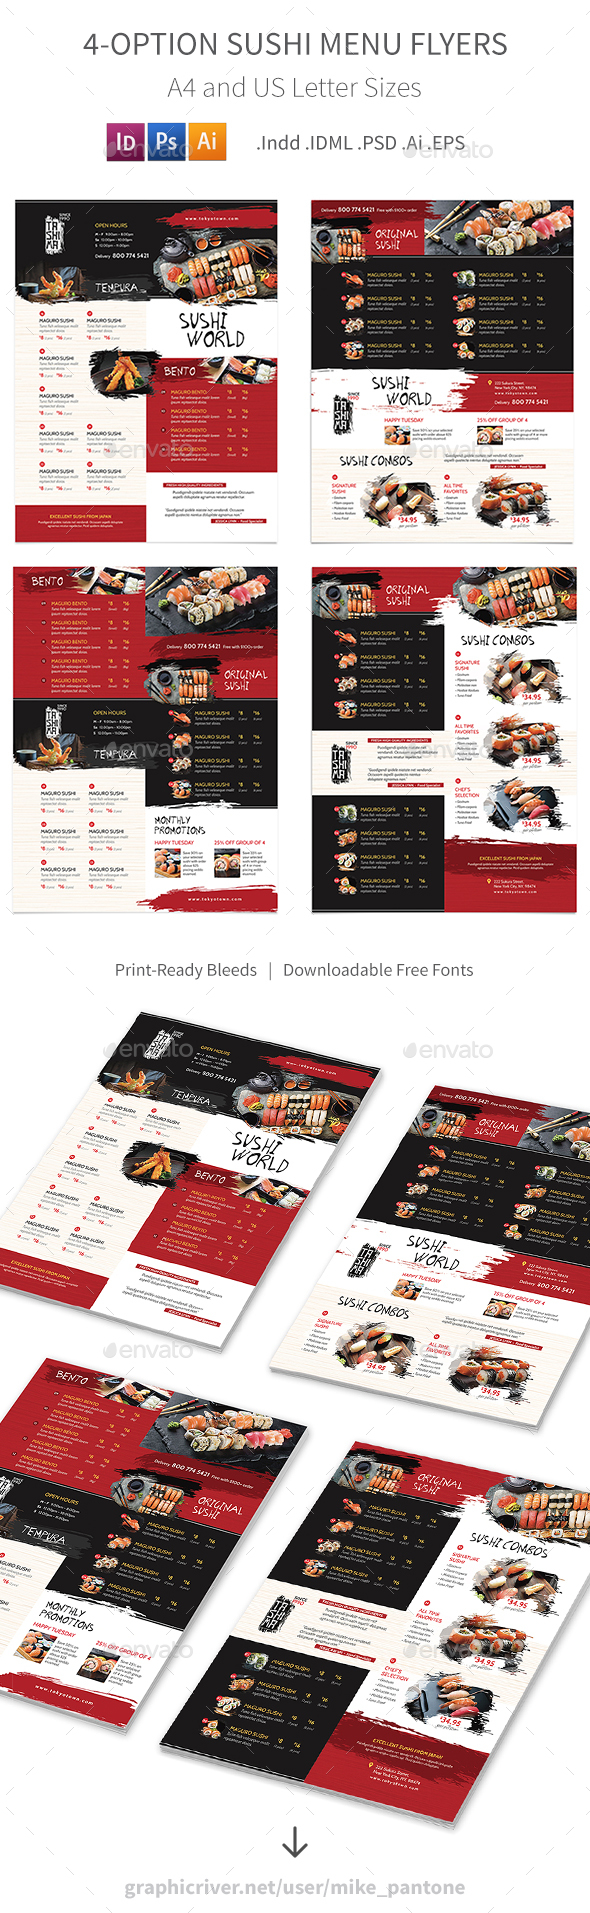 GraphicRiver Sushi Restaurant Menu Flyers 3 4 Options 21169239